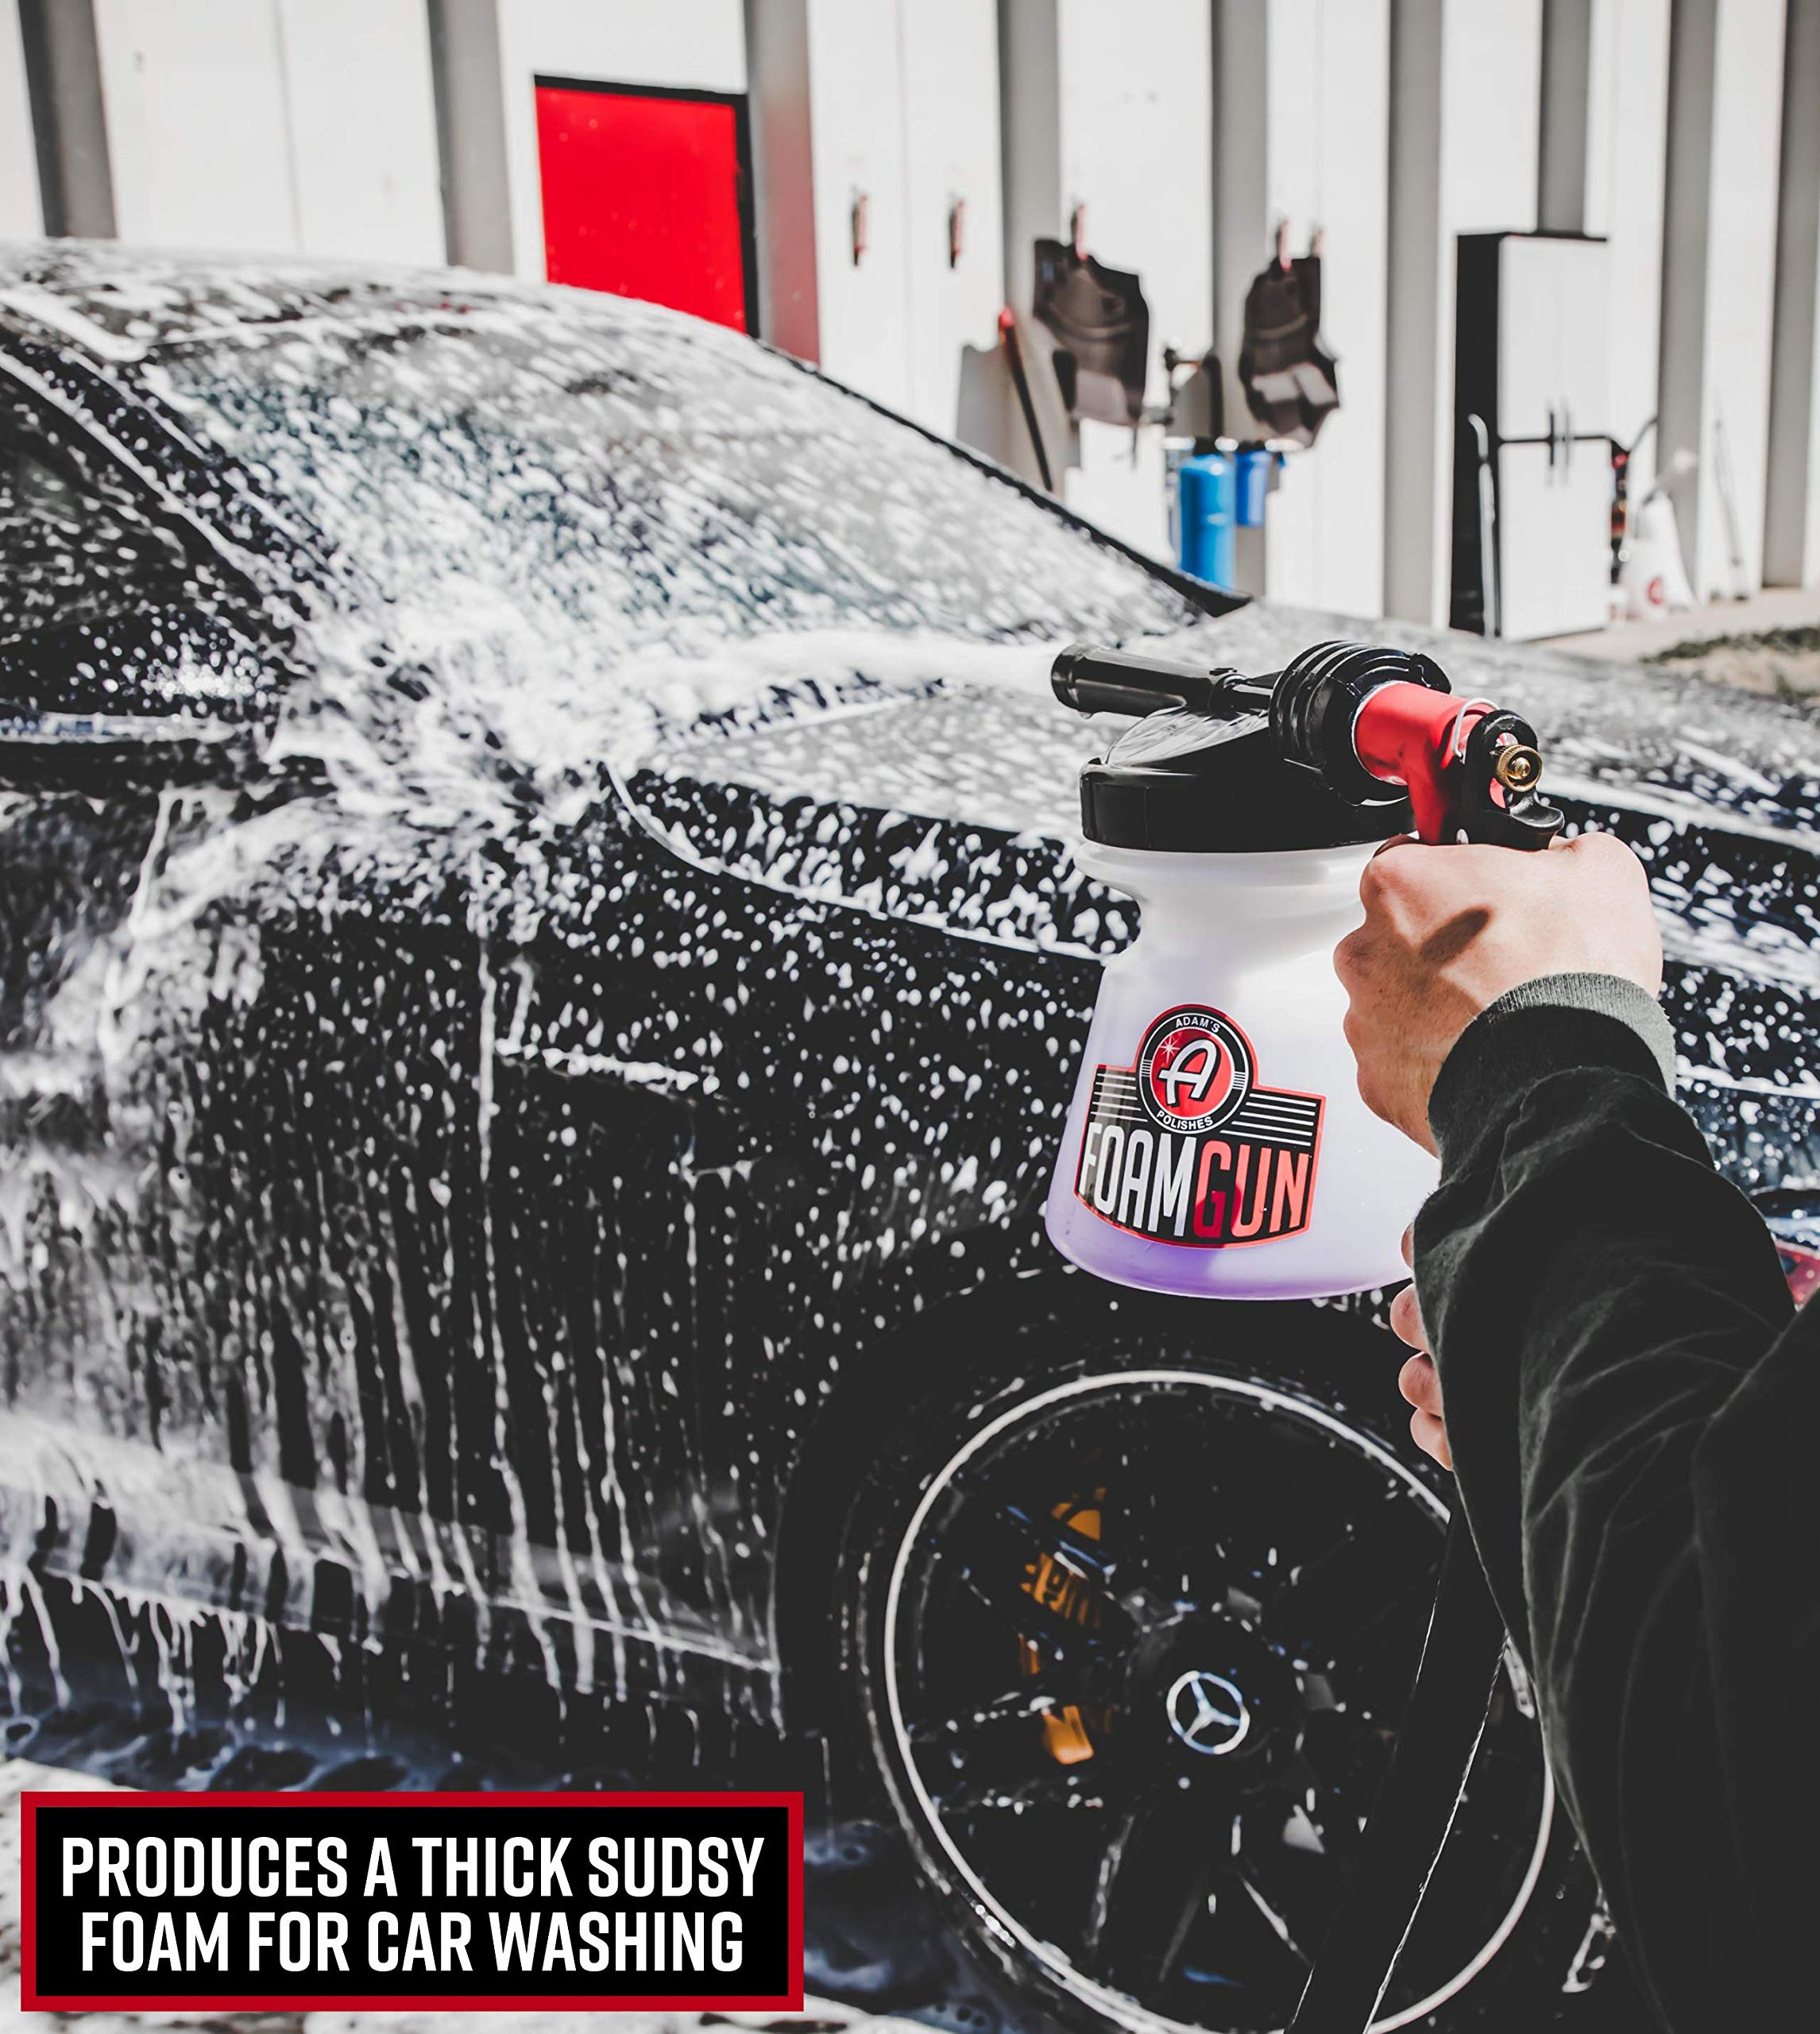 Adam's Foam Gun & Ultra Foam Gallon - Use with Any Car Wash Soap & Garden Hose for Thick Suds - Detailing Tool Does Not Require Pressure Washer & Won't Remove Wax Sealant by Adam's Polishes (Image #2)